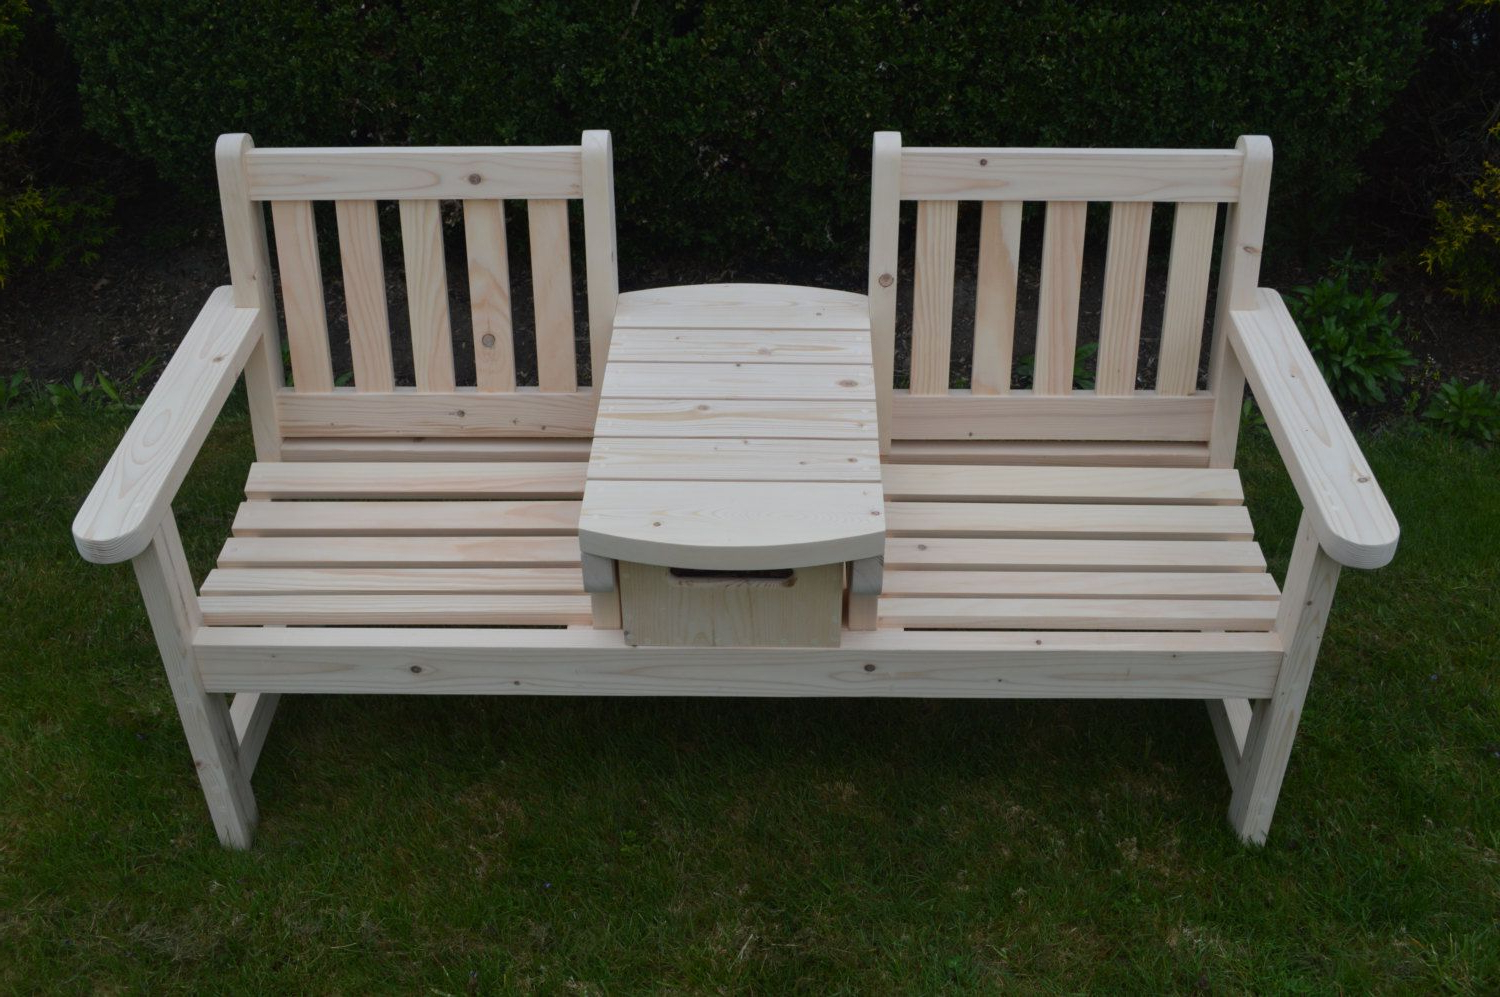 English Twin Seater Bench With Table And Wood Crate Drawer With Well Known Twin Seat Glider Benches (View 10 of 31)